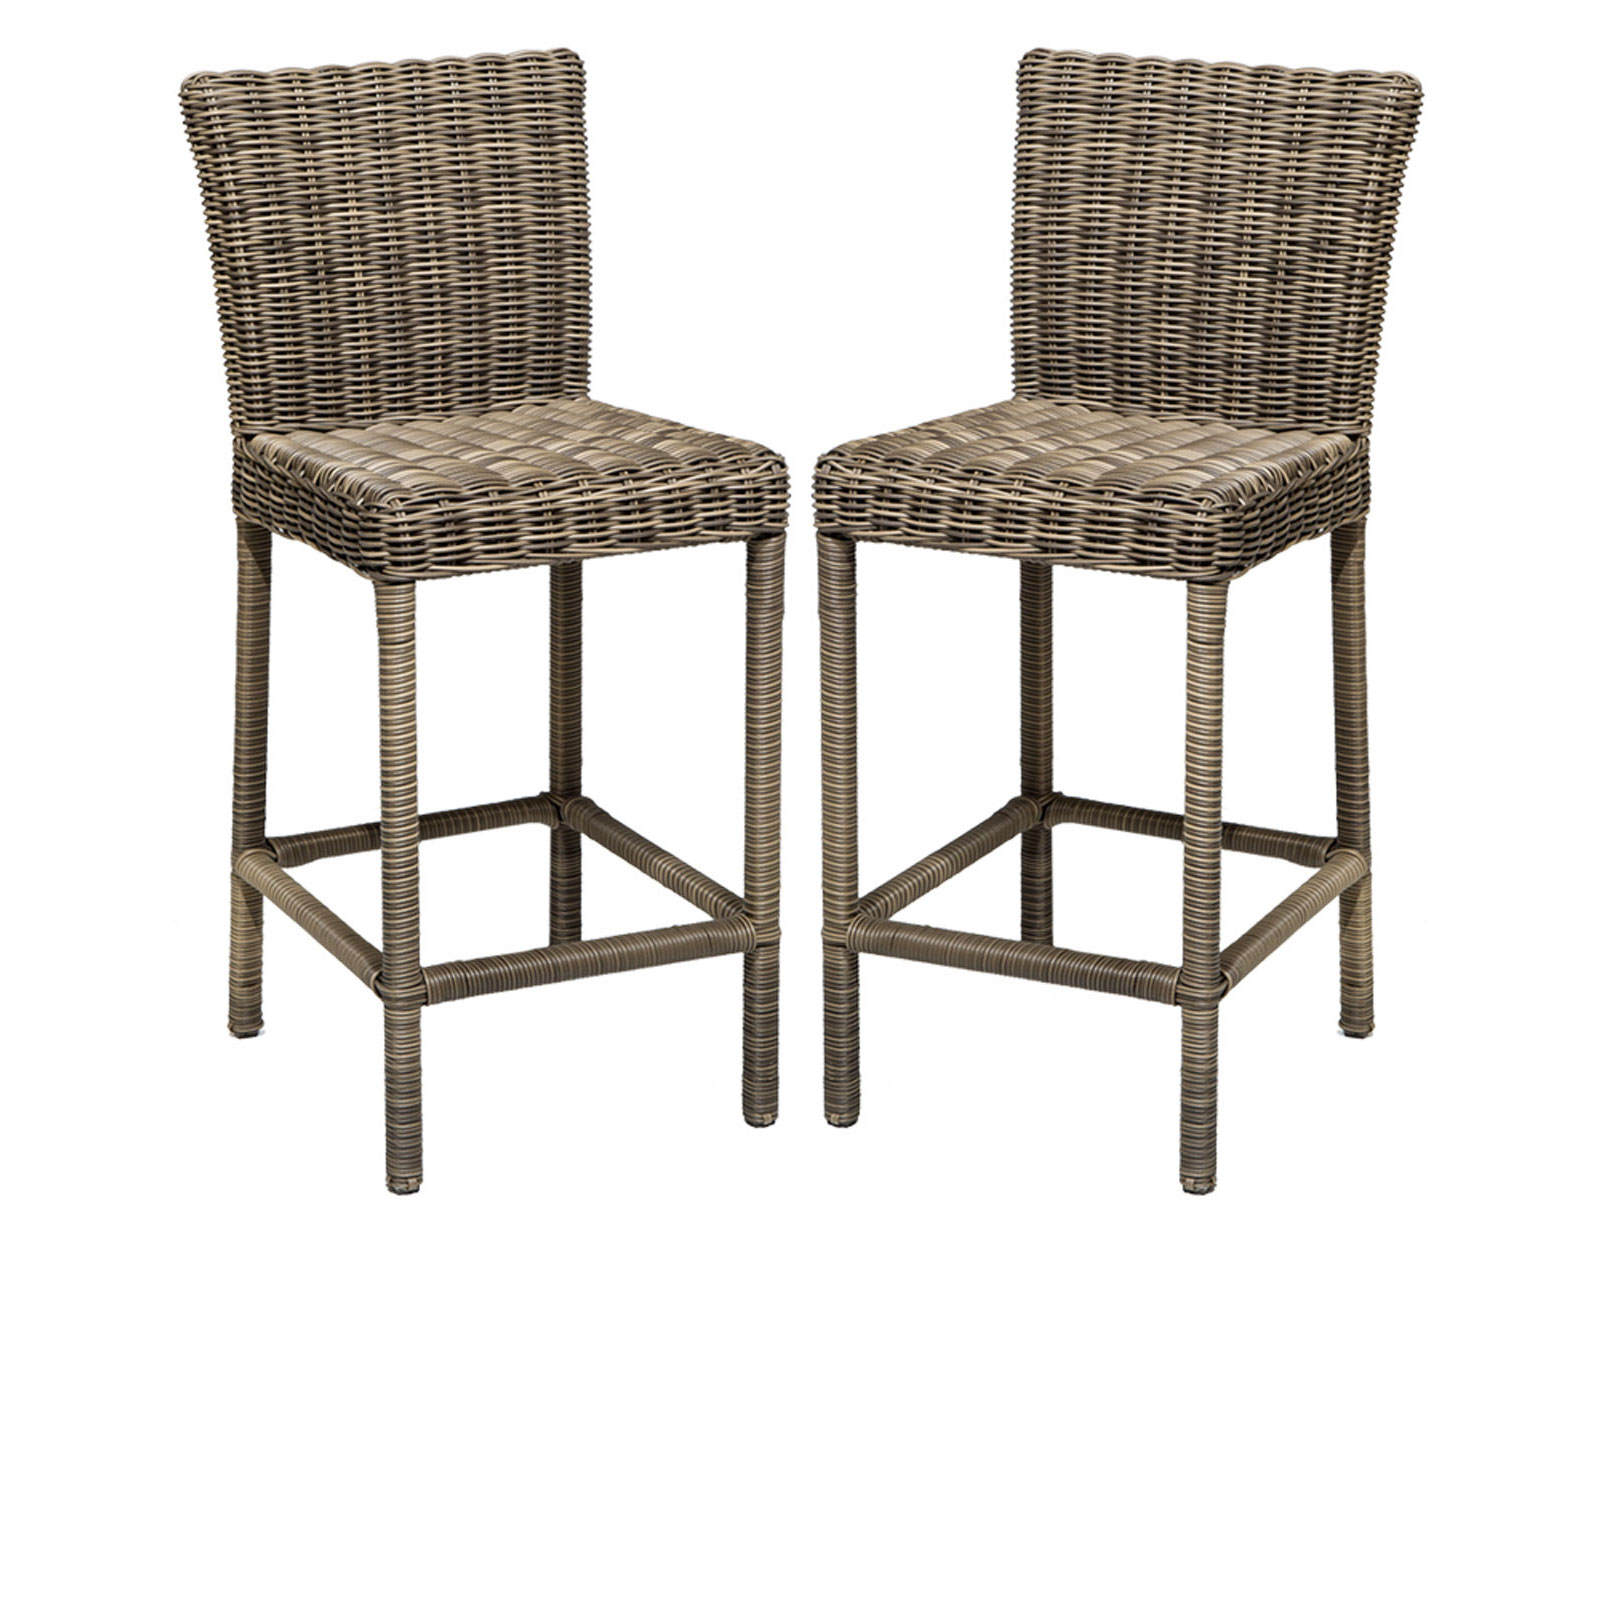 2 Royal Barstools w/ Back